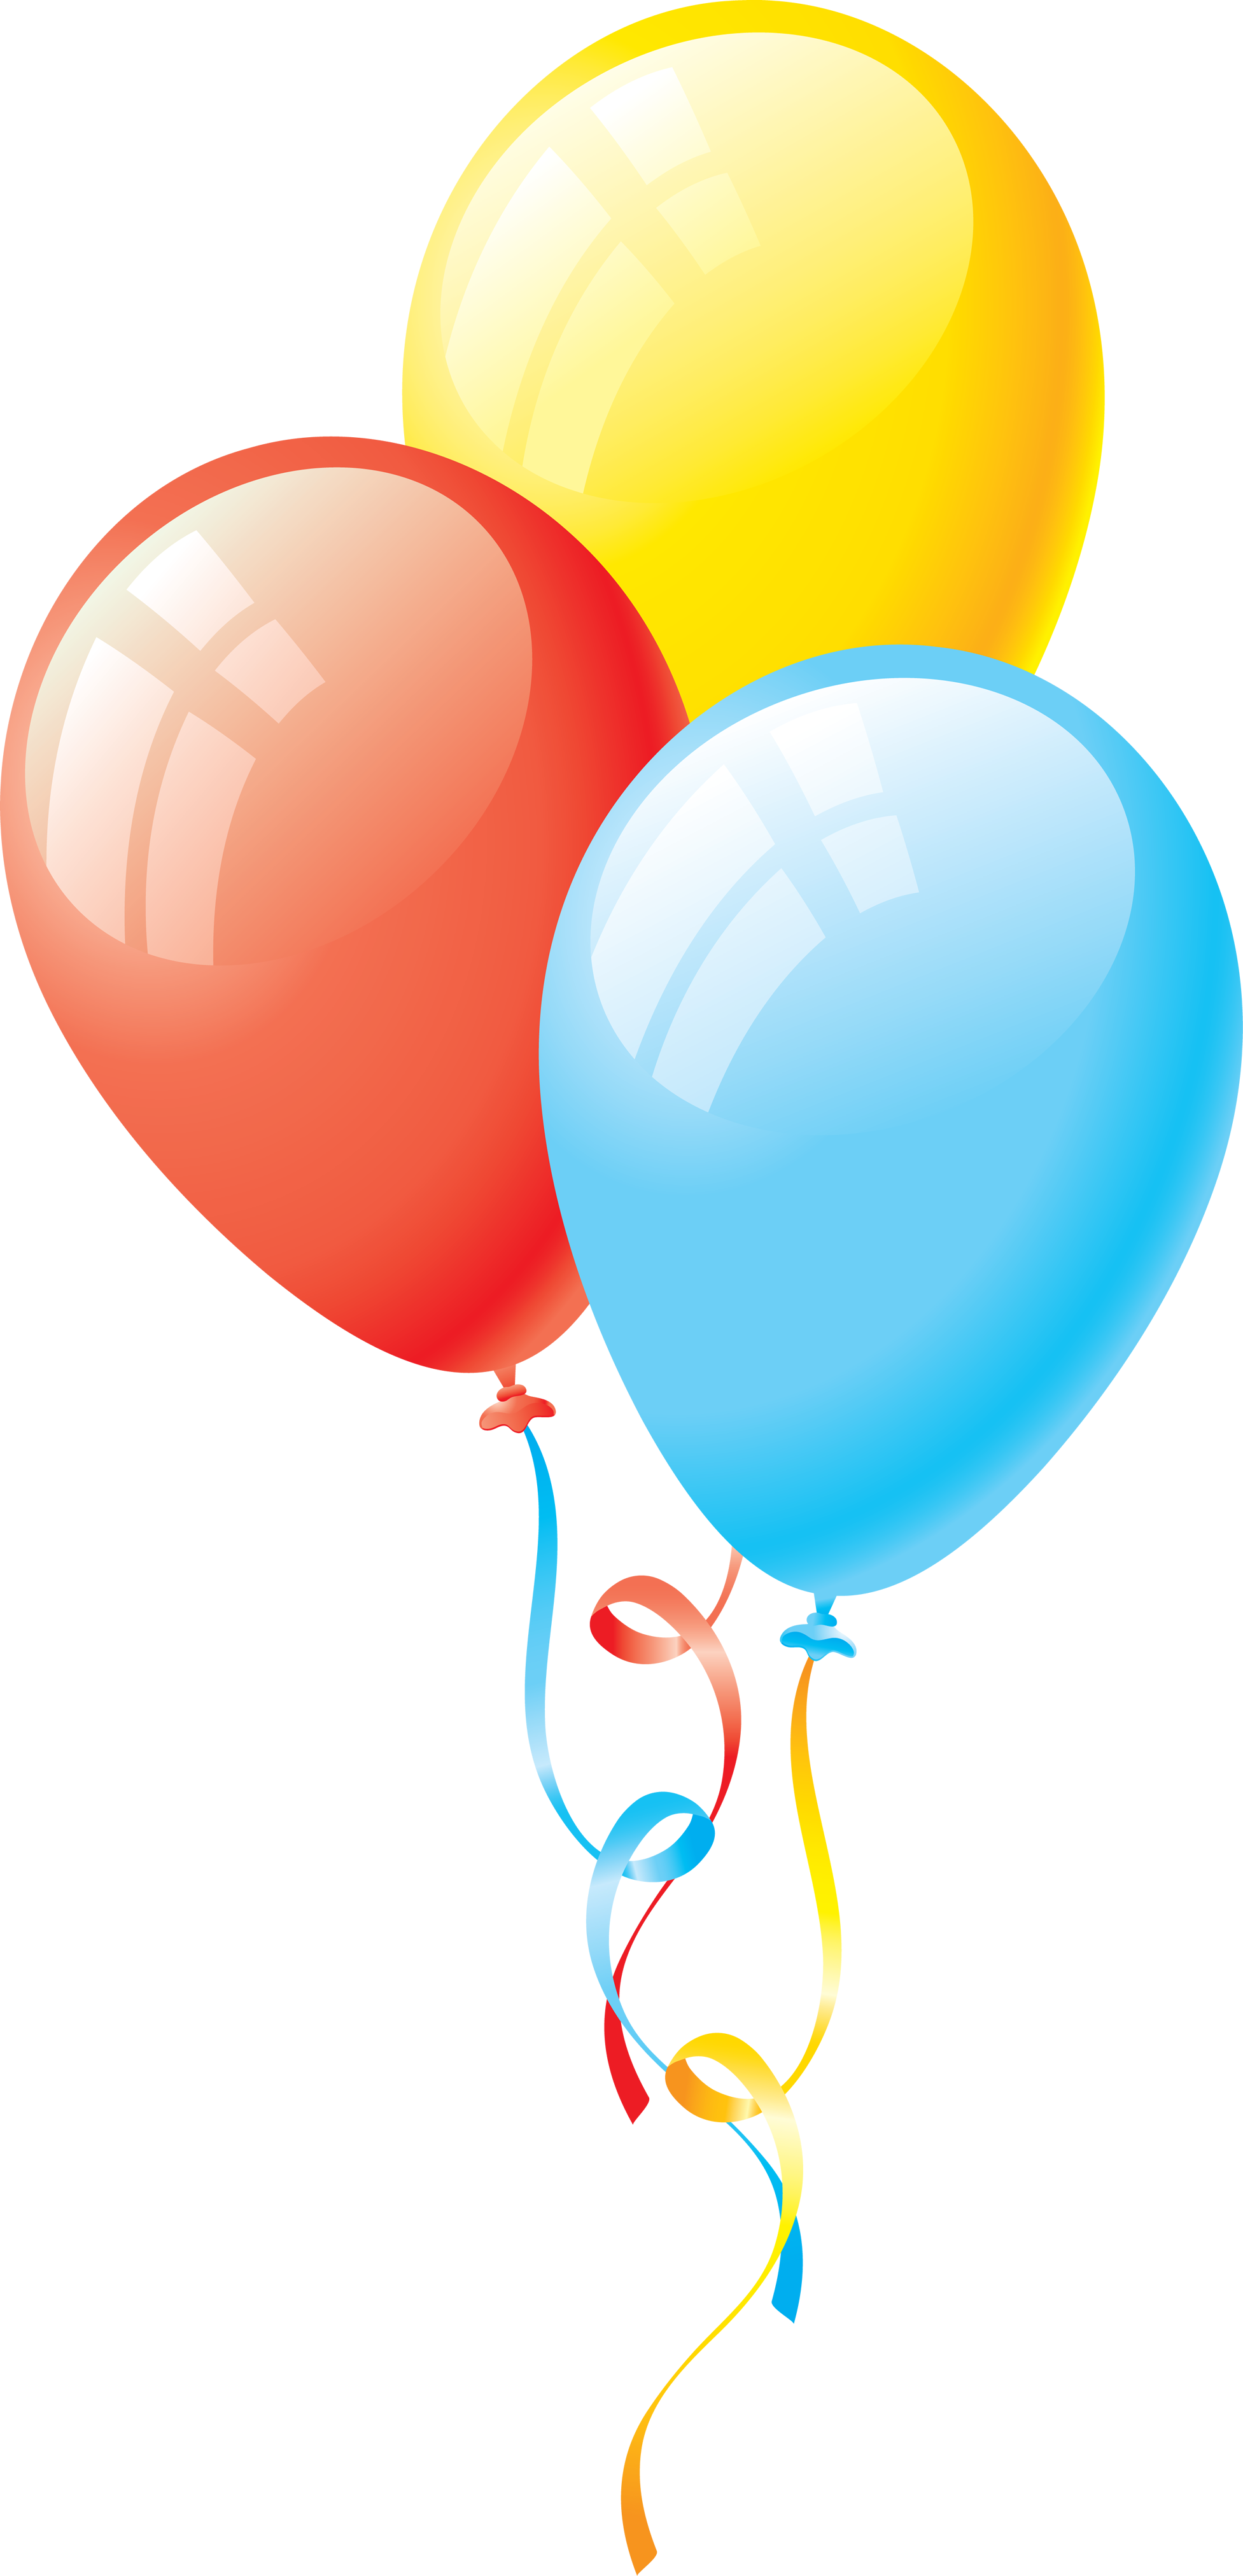 jpg library library Colorful png image download. Balloon clipart free